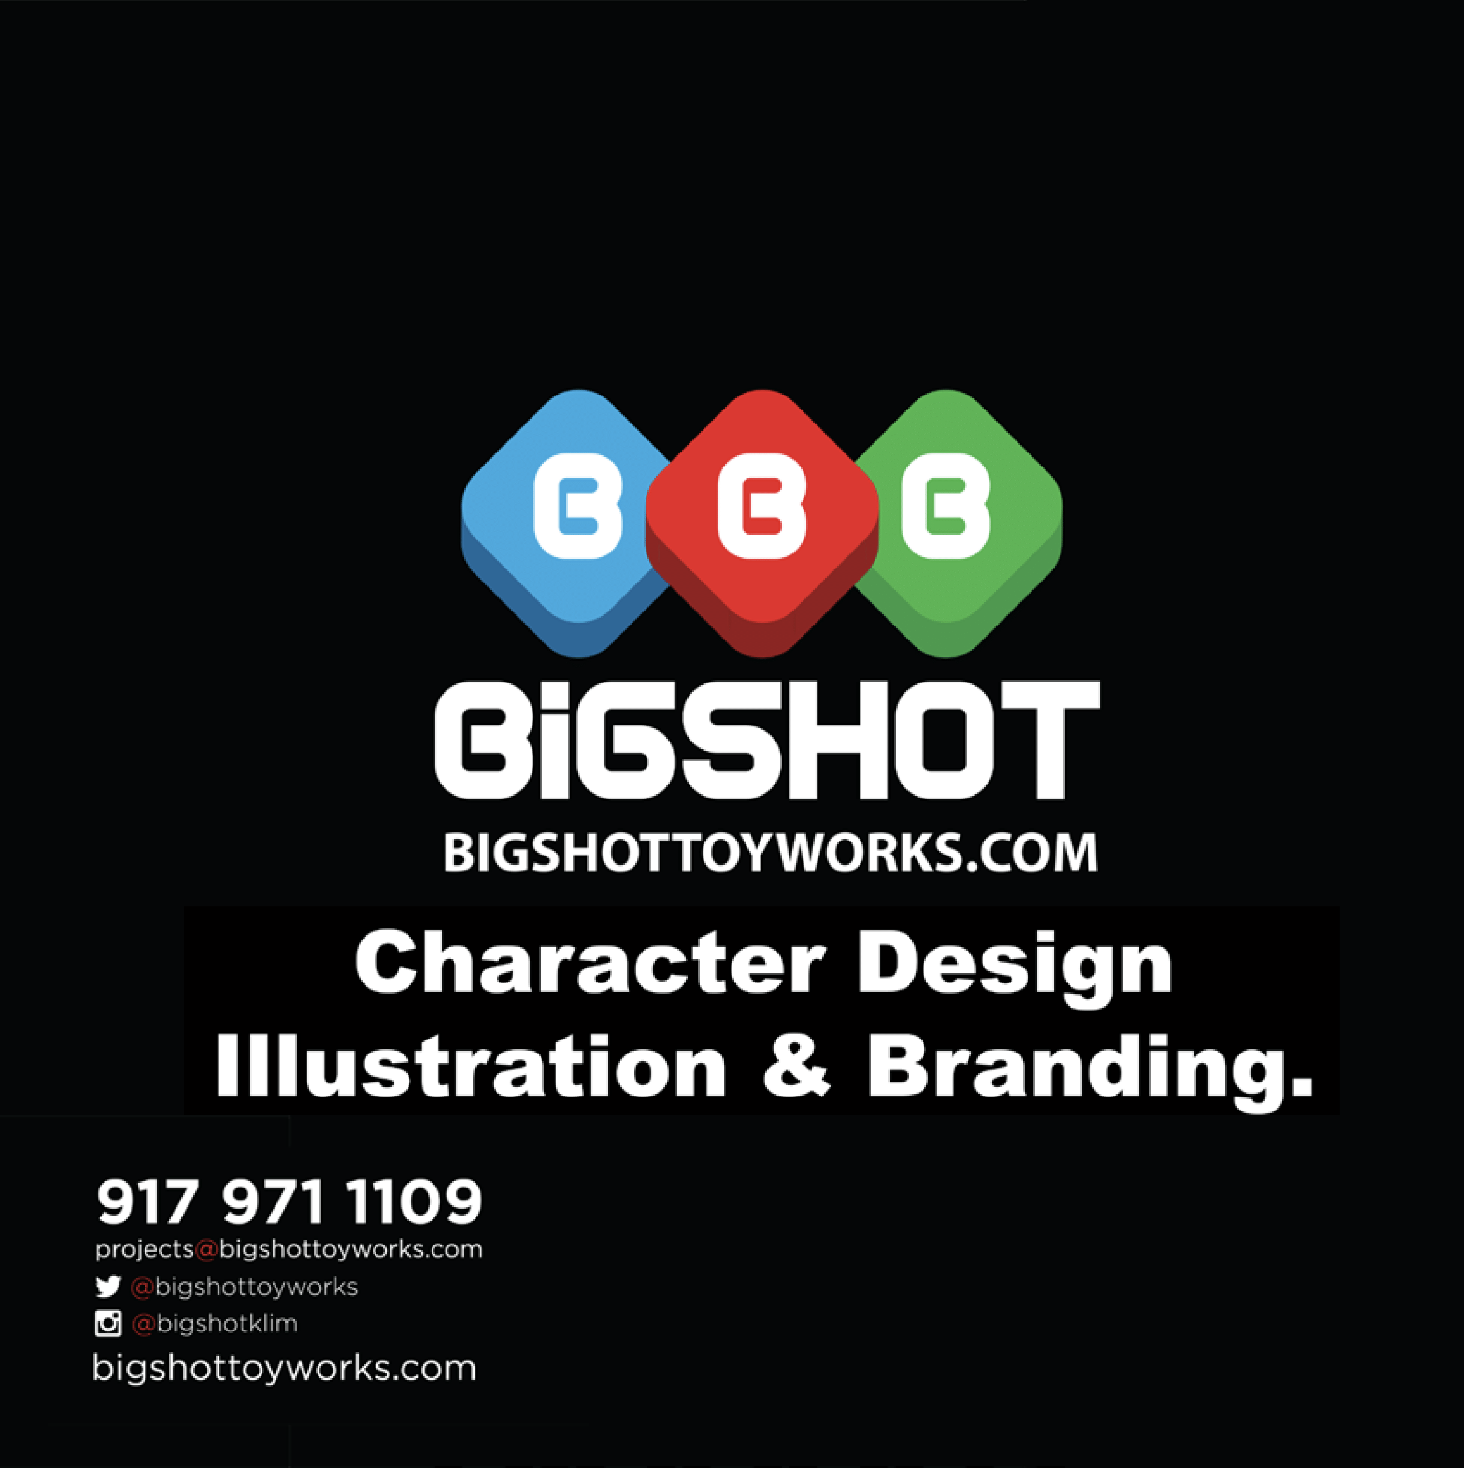 Bigshot Character Design, Illustration & Branding Deck